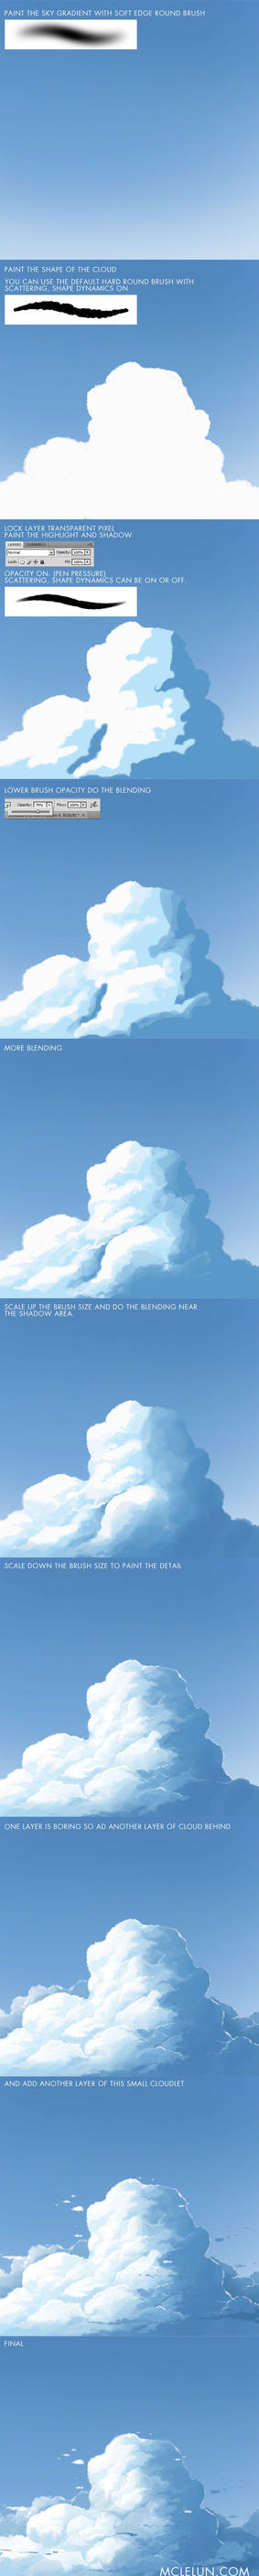 Painting Anime Style Cumulus Cloud by mclelun